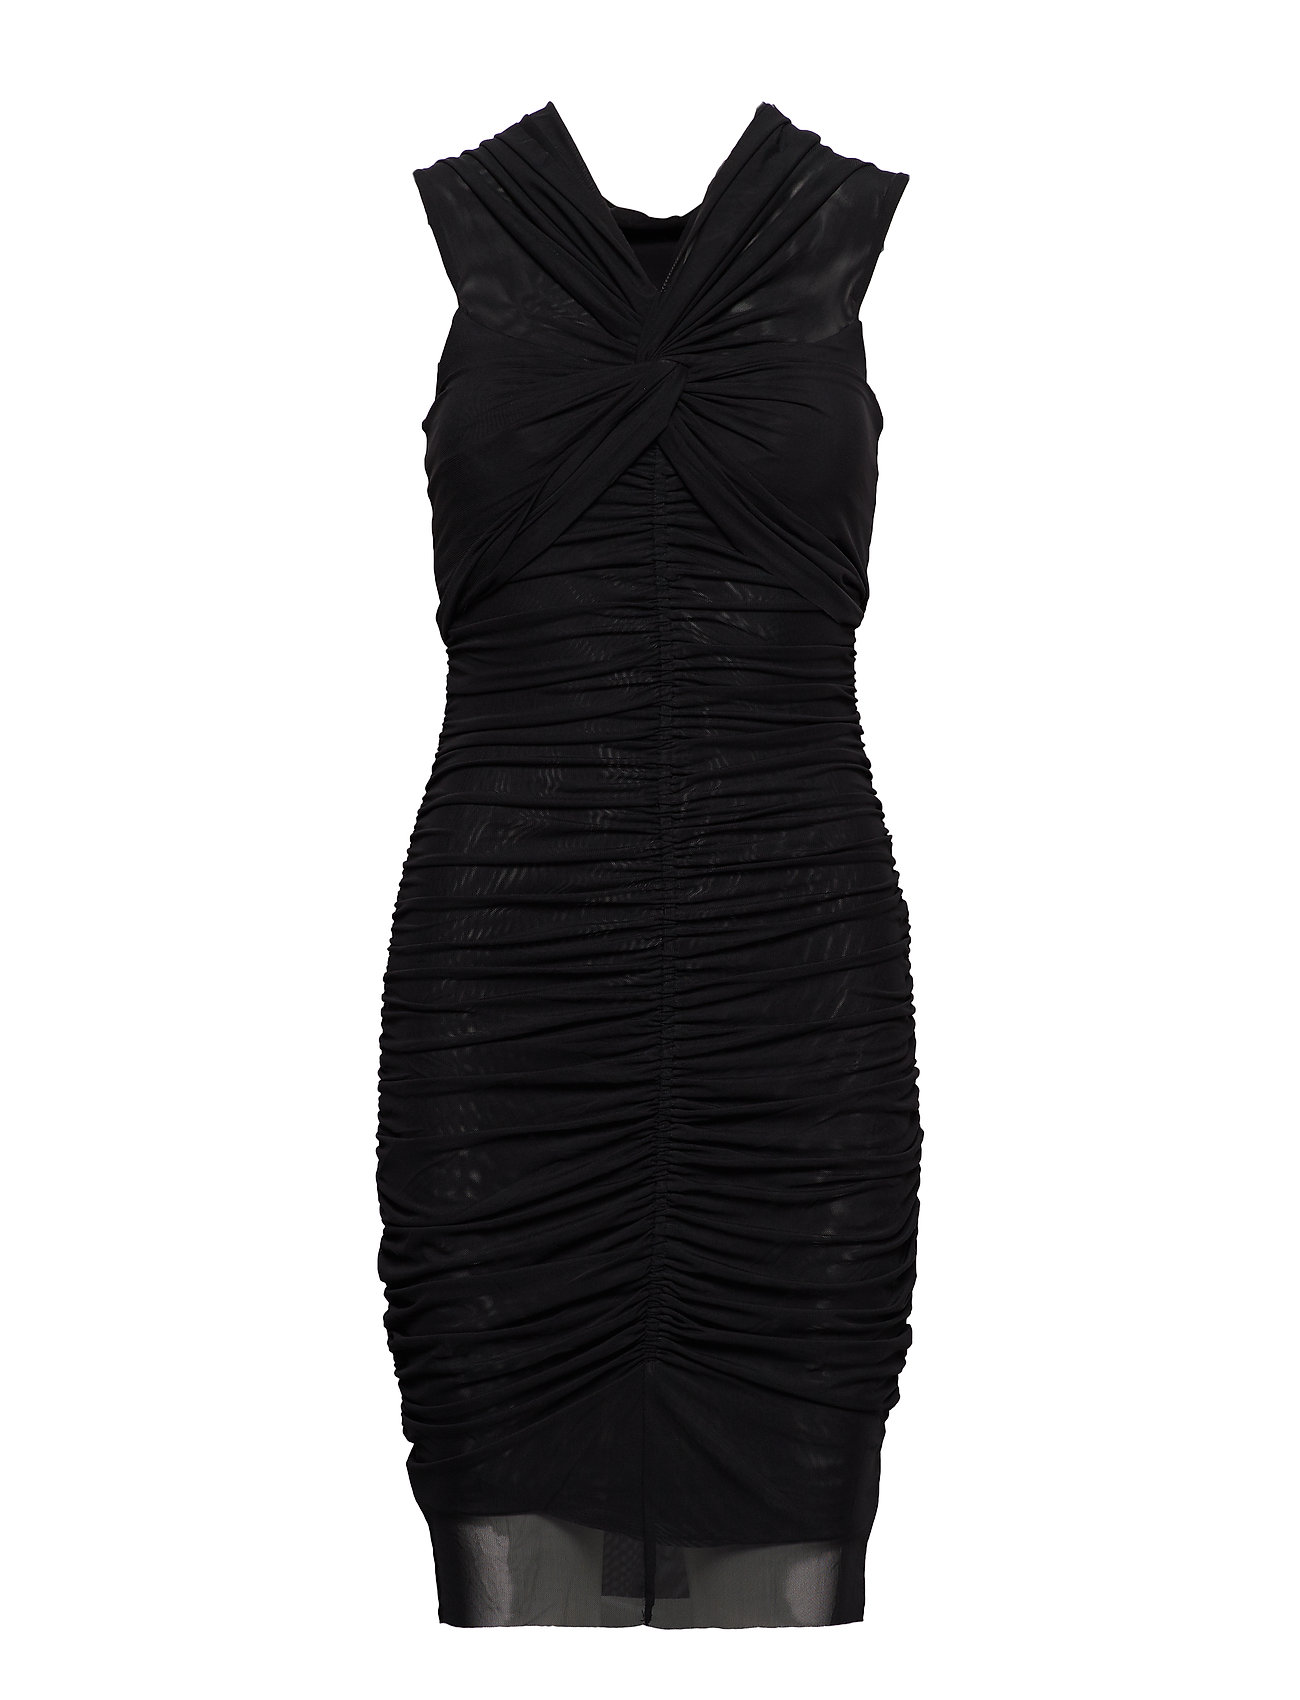 Marciano by GUESS NADINE MESH DRESS - JET BLACK A996